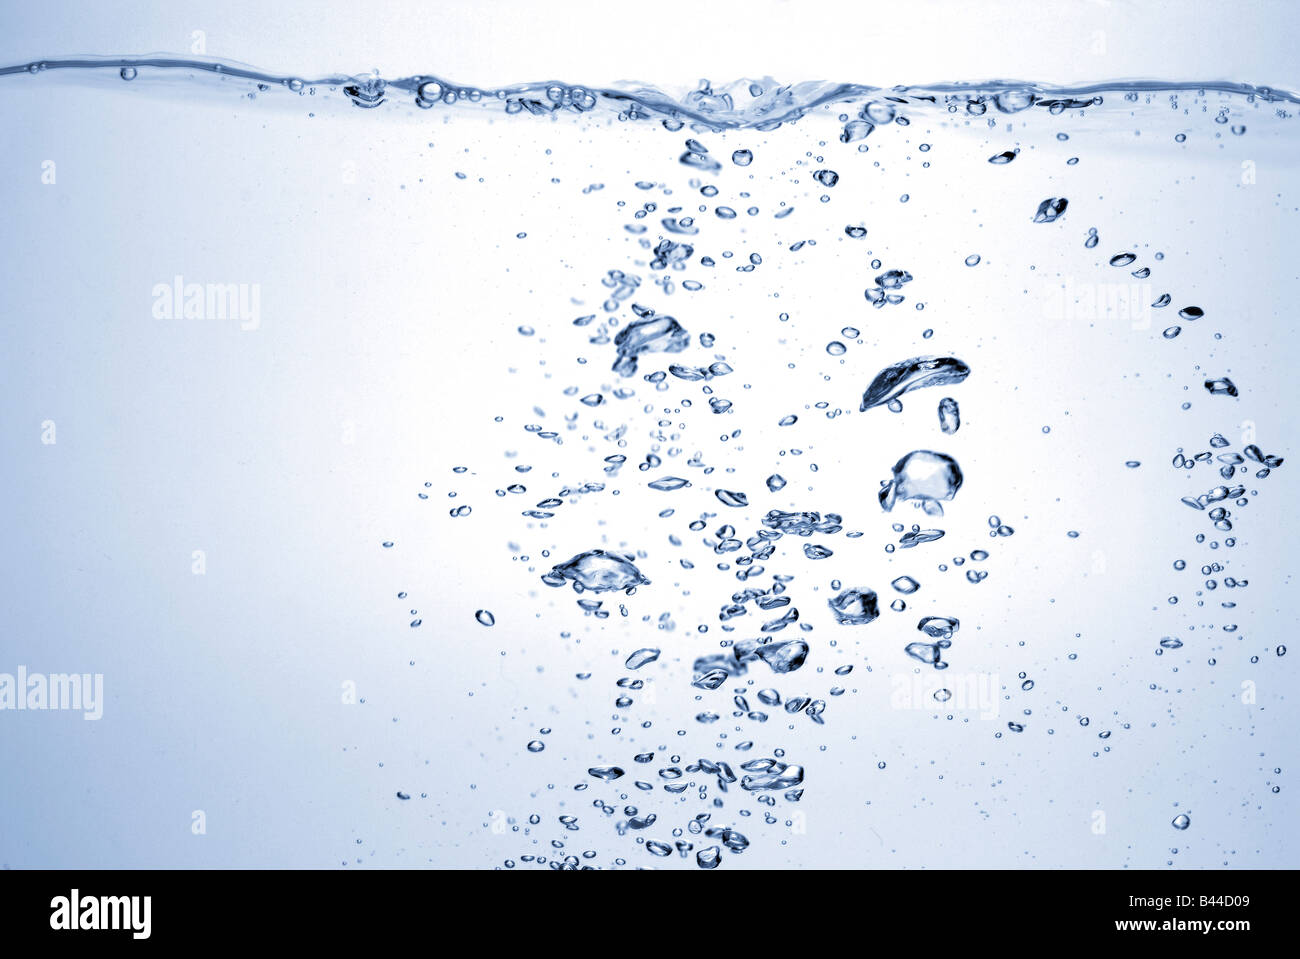 rippling water and bubbles - Stock Image